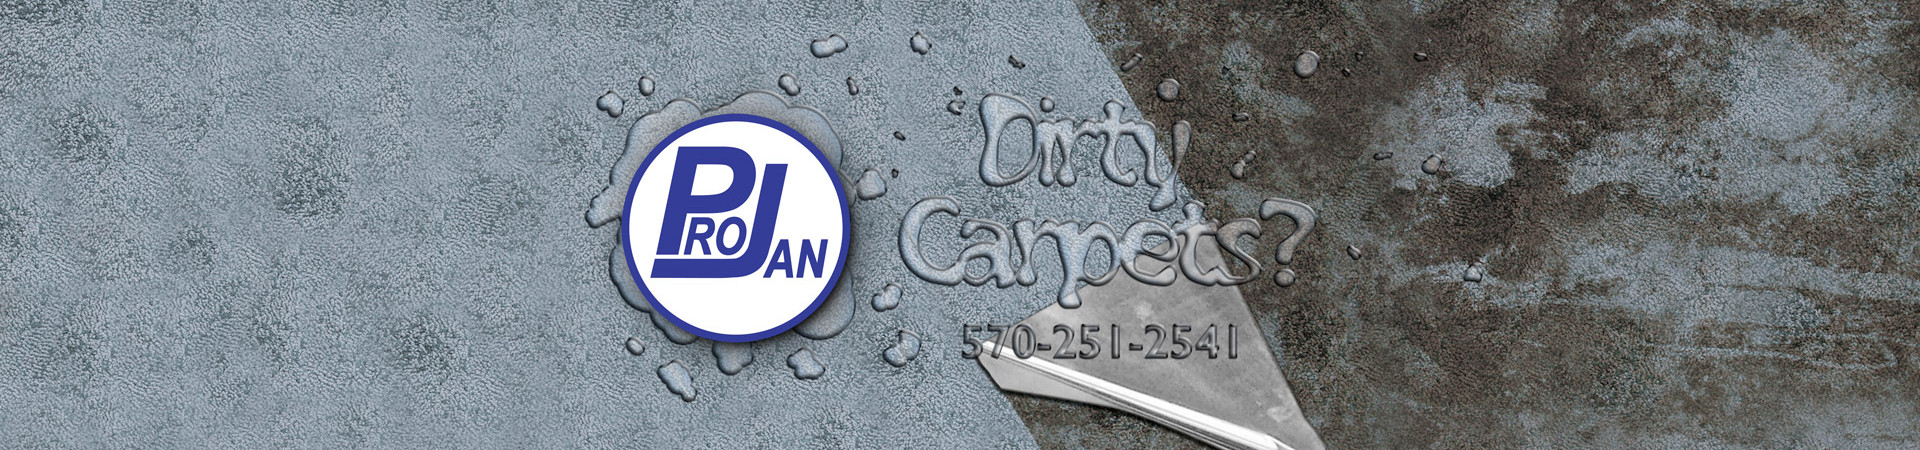 ProJan Carpet Cleaning